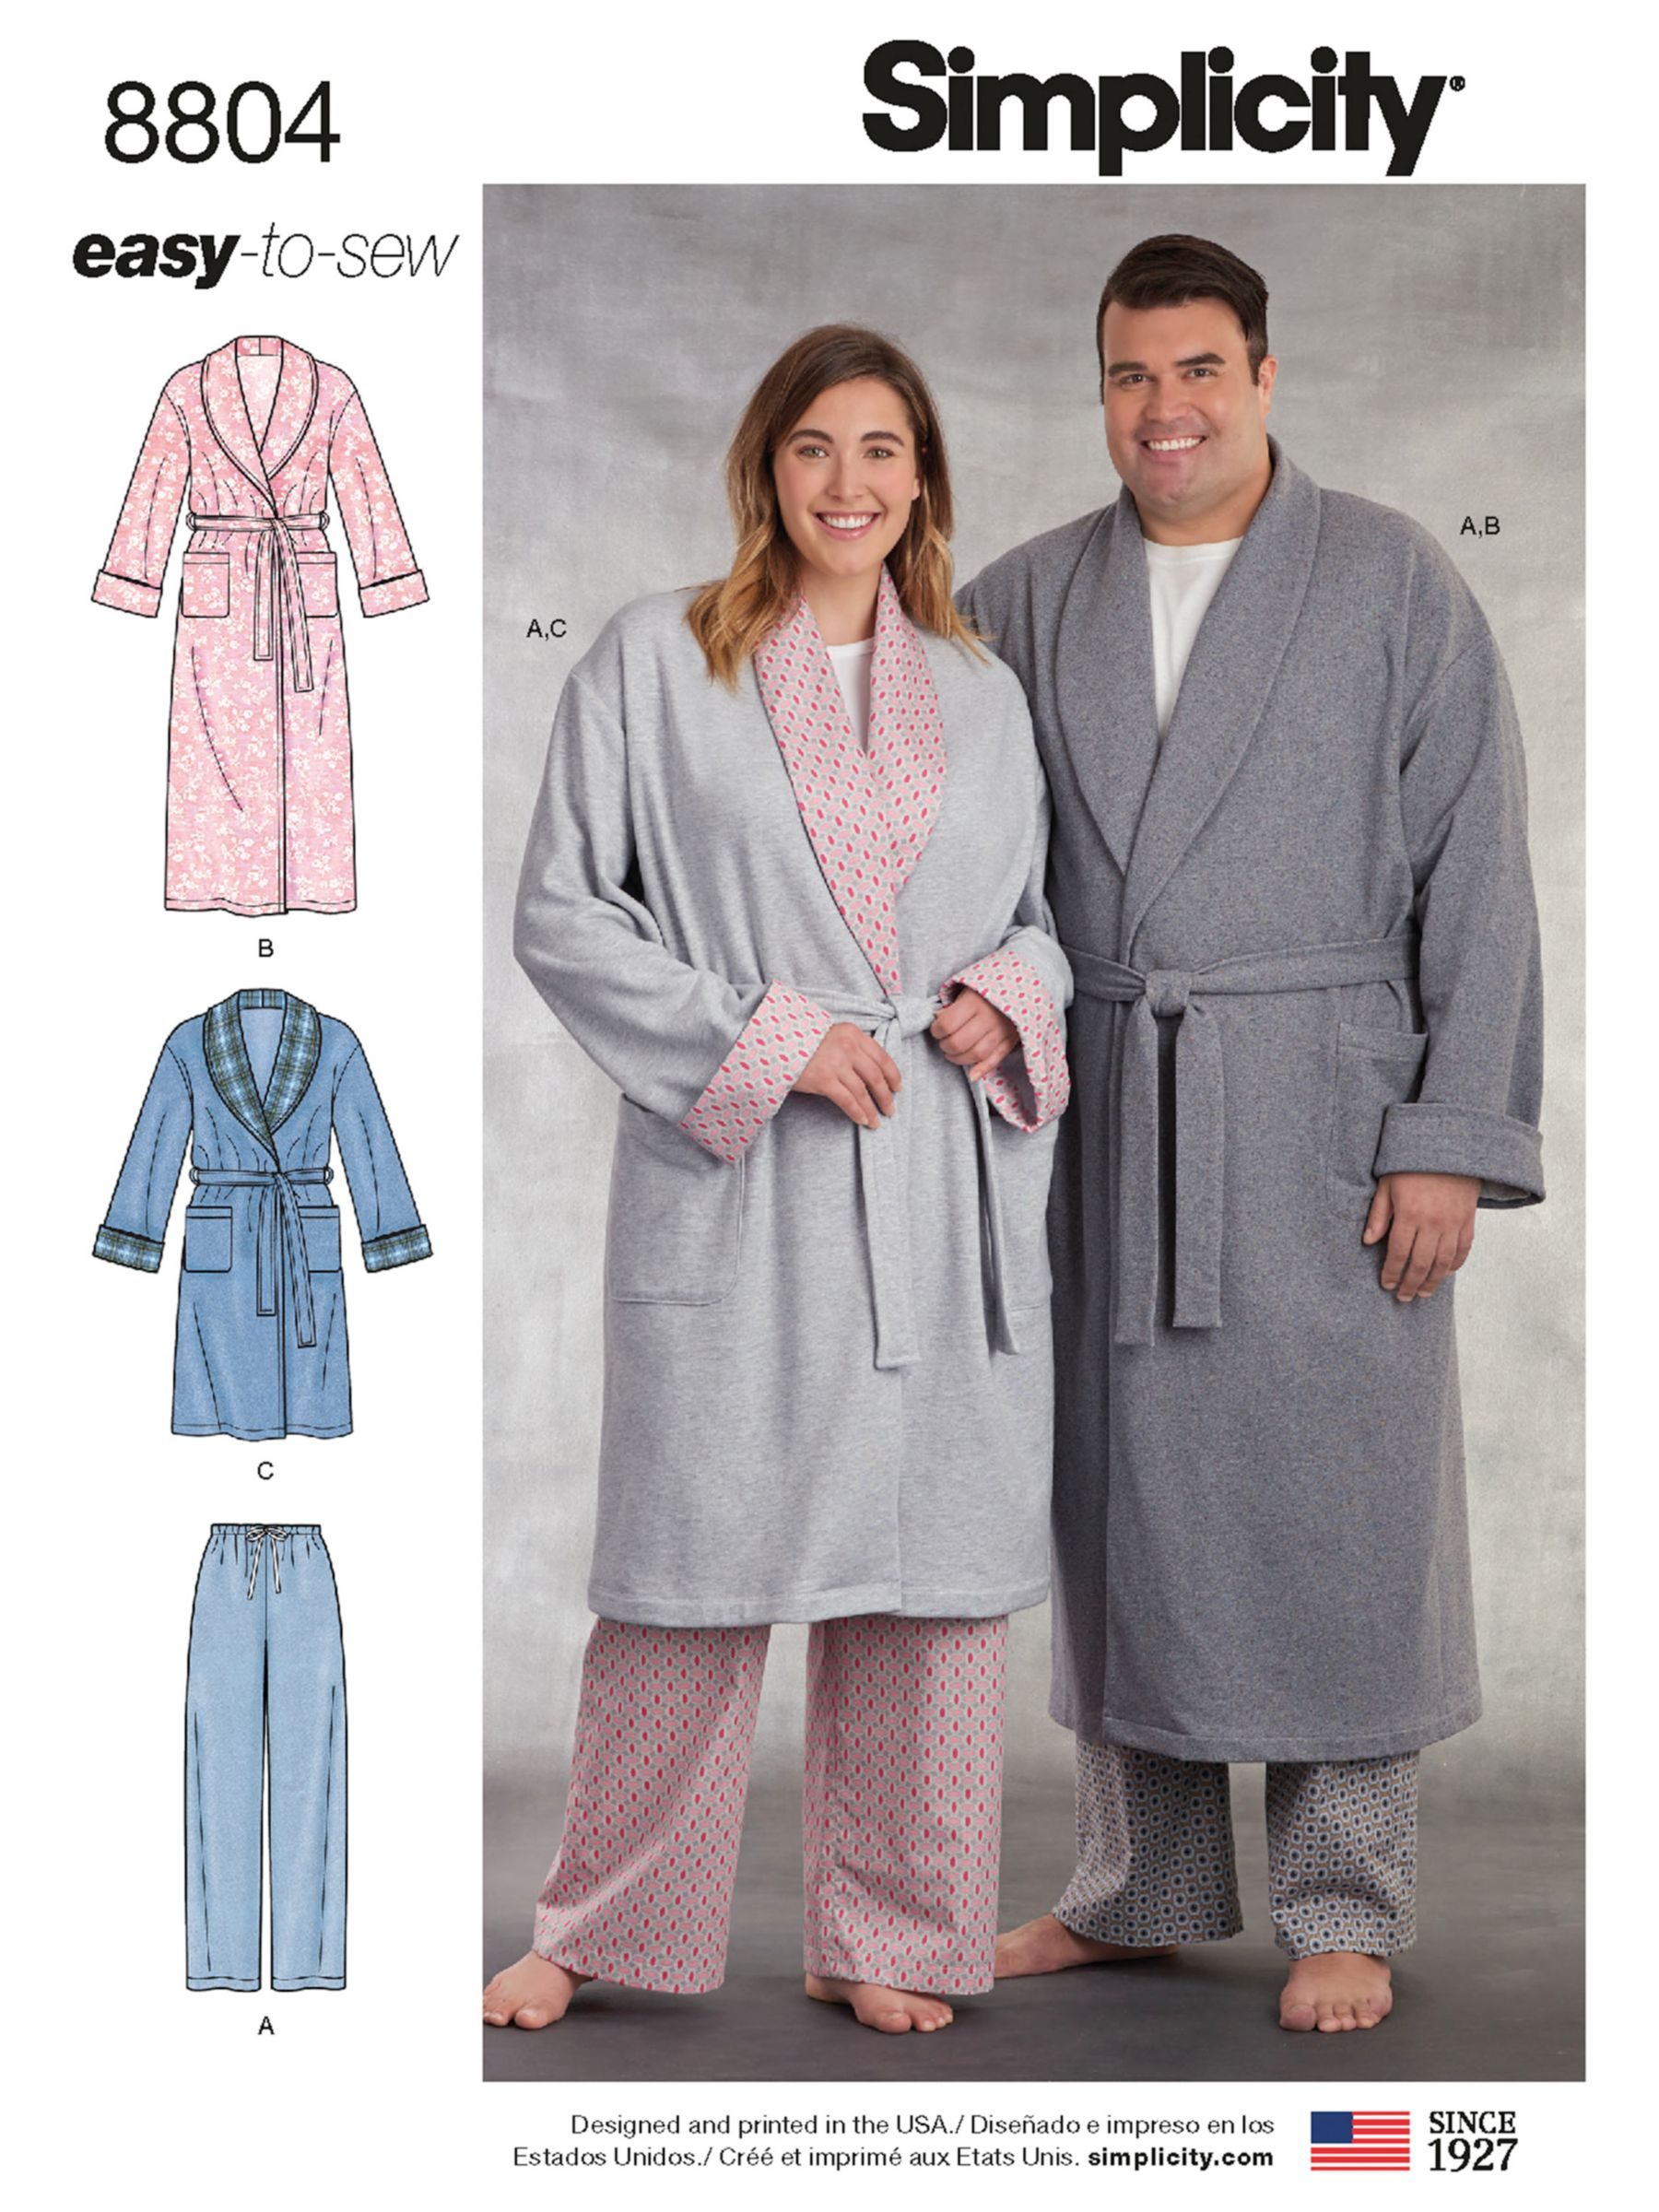 Simplicity Simplicity Women's and Men's Robe Sewing Pattern, 8804